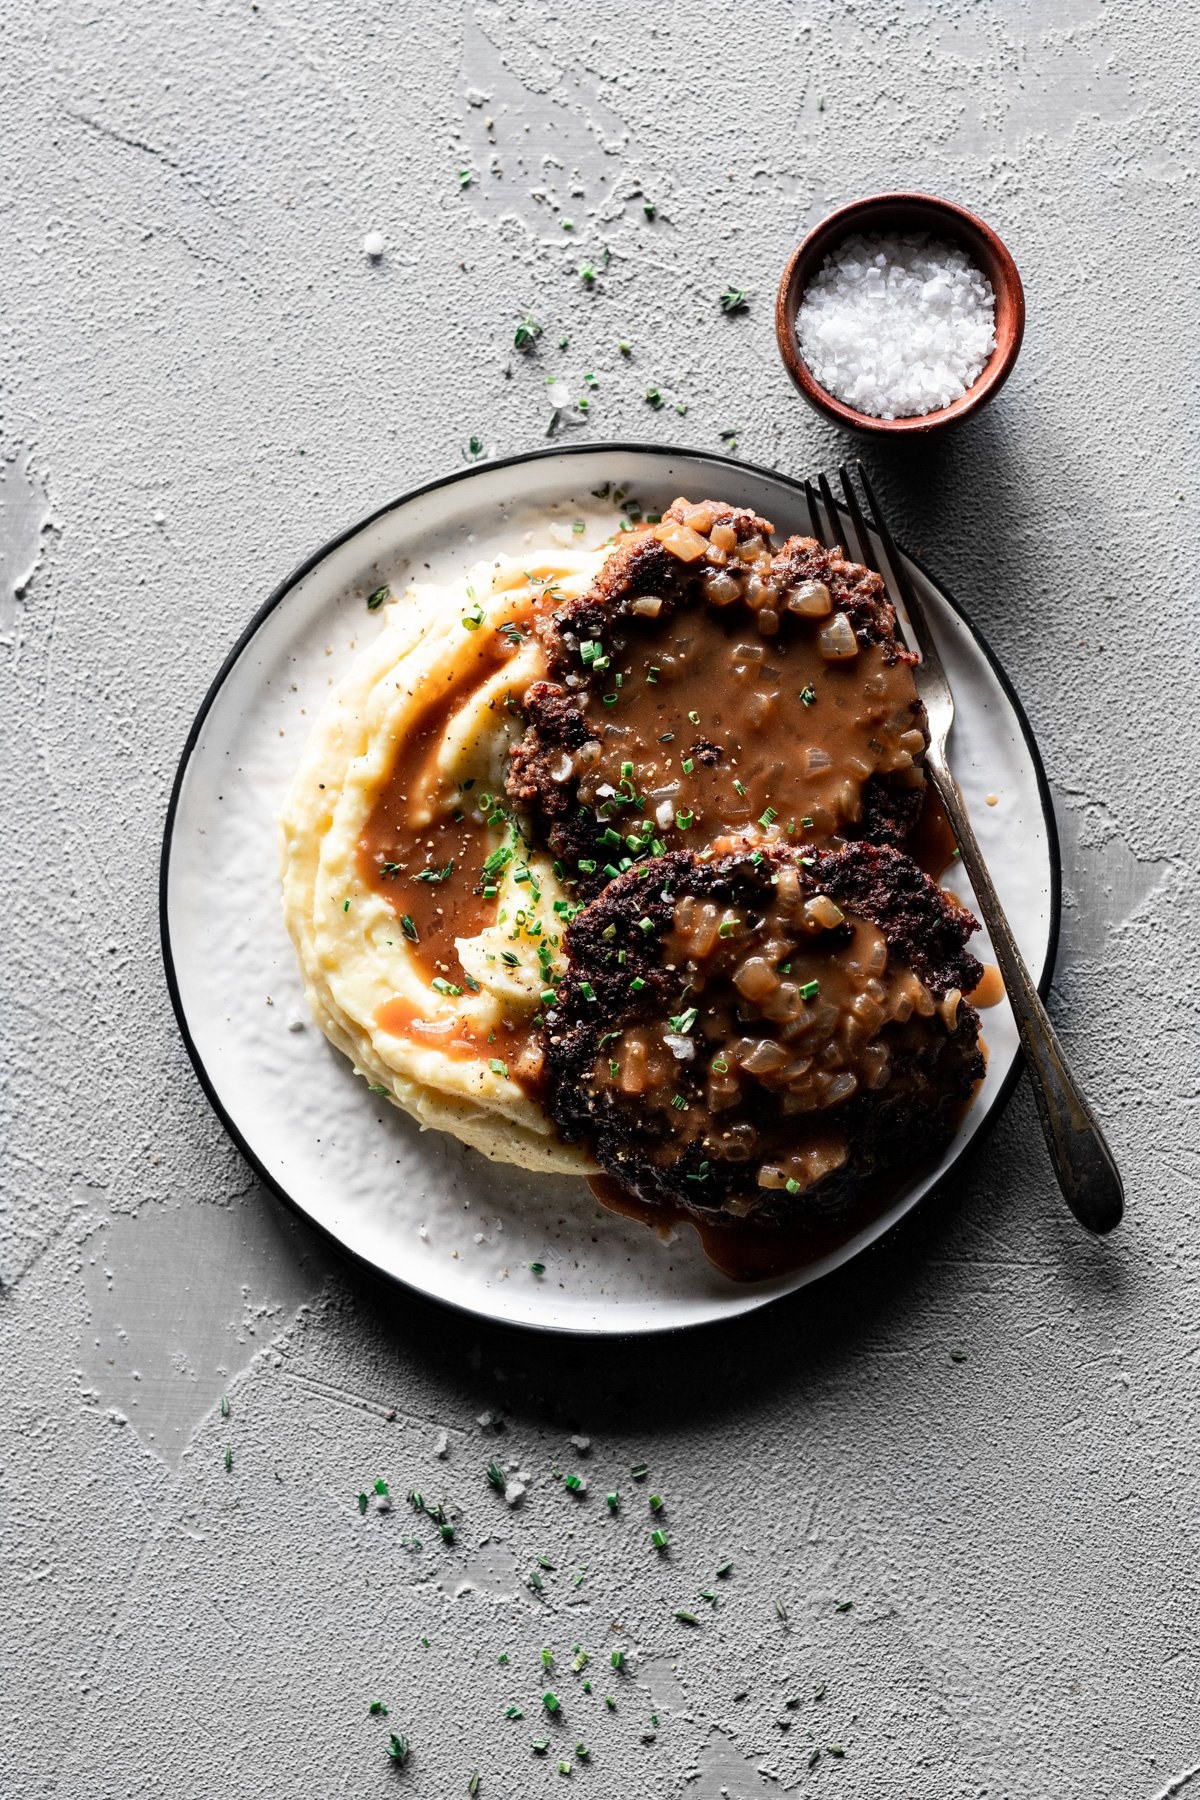 two salisbury steak patties with onion gravy on mashed potatoes